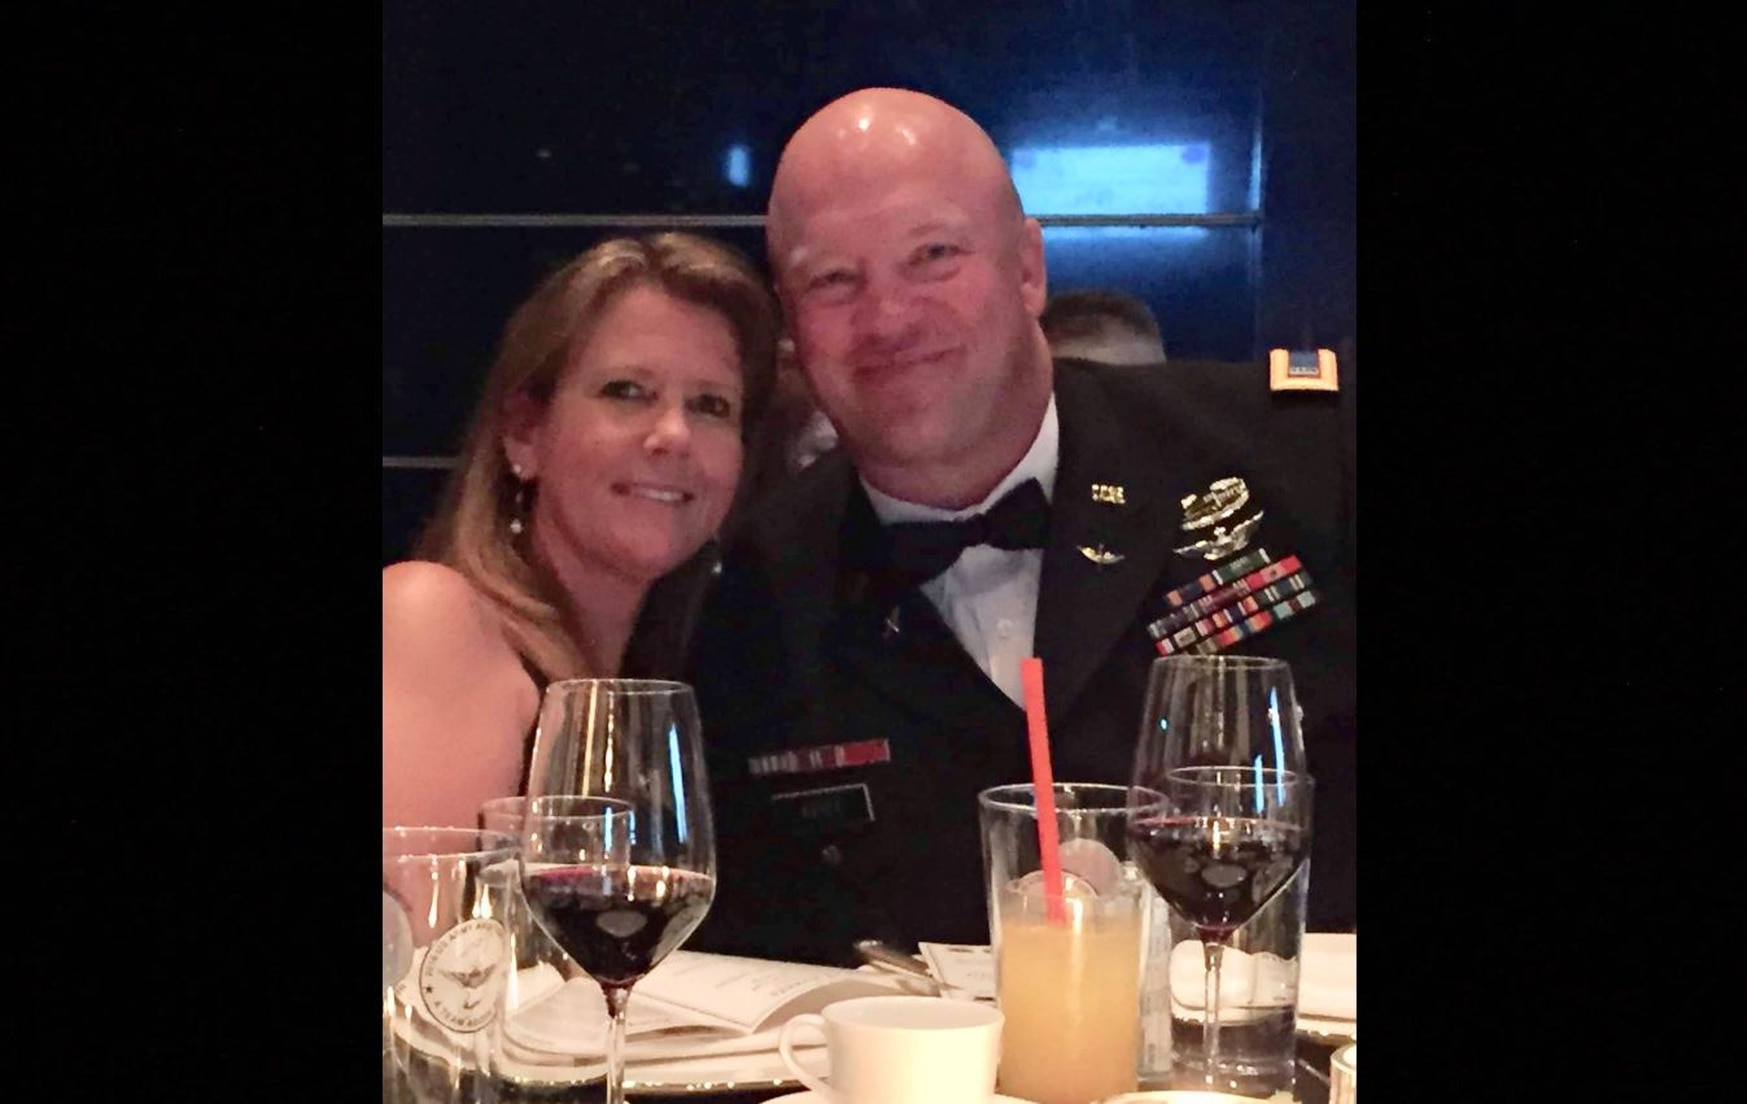 CW4 Paul J. Reidy pictured with his wife, Jennifer, during an Army ball in South Korea. (Jennifer Reidy/Courtesy photo)